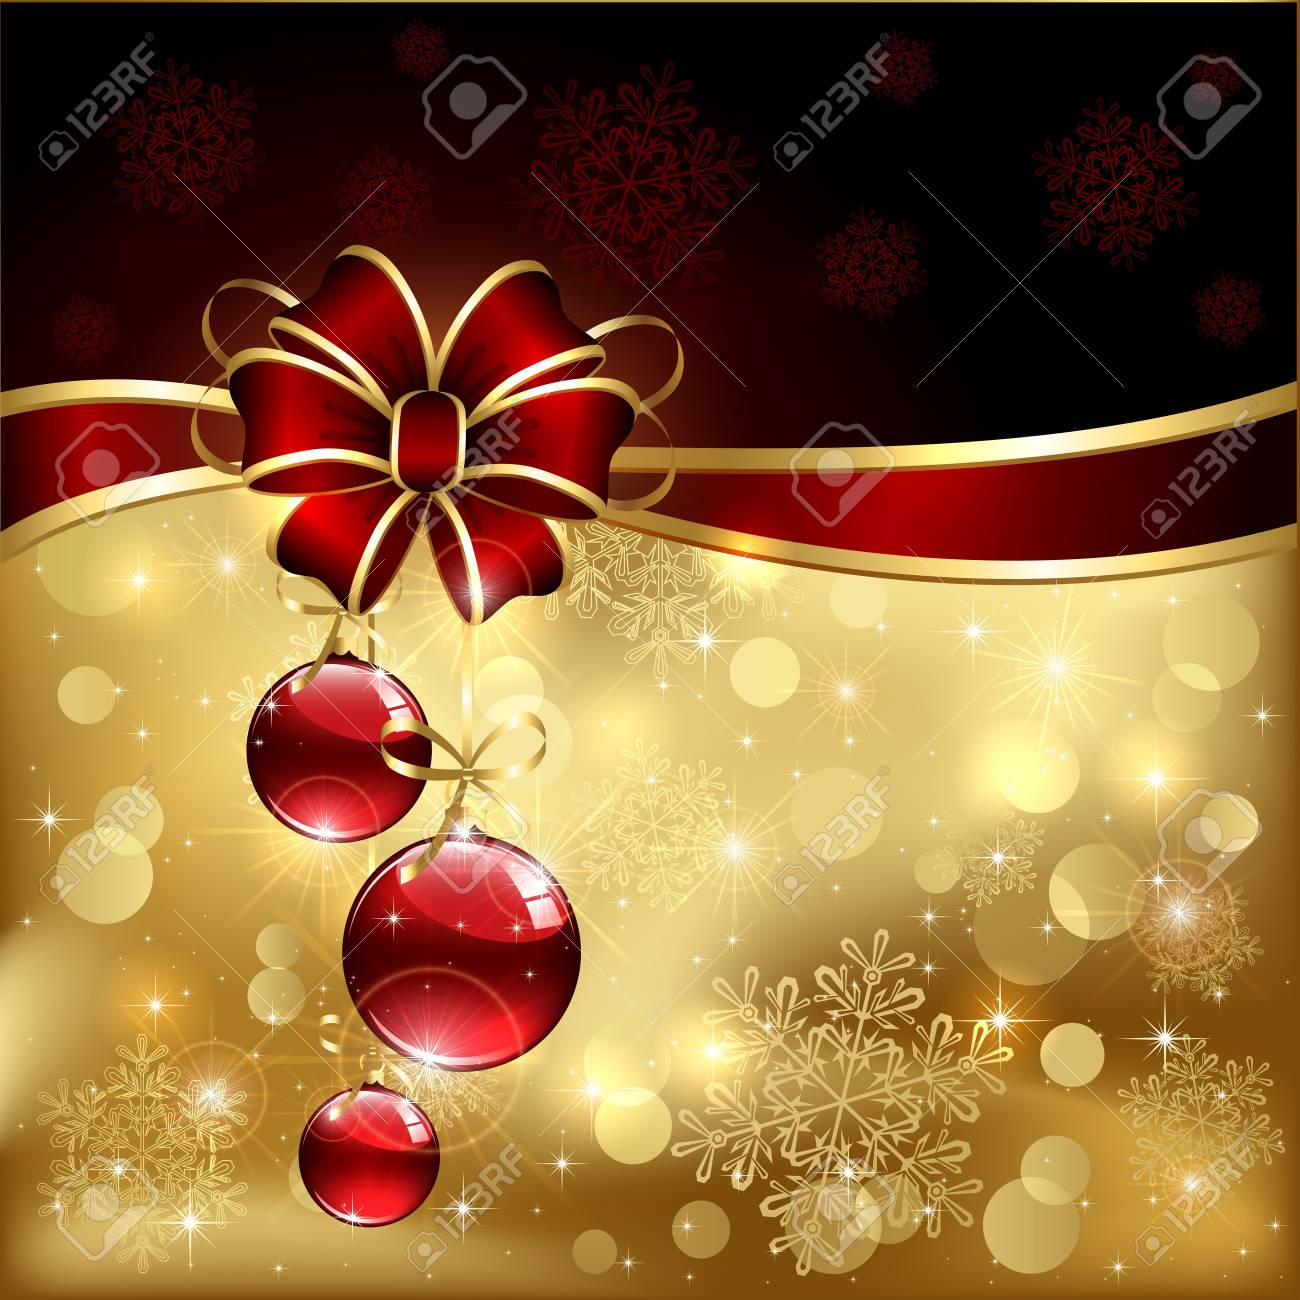 Background with red christmas baubles, illustration. Stock Vector - 16000351